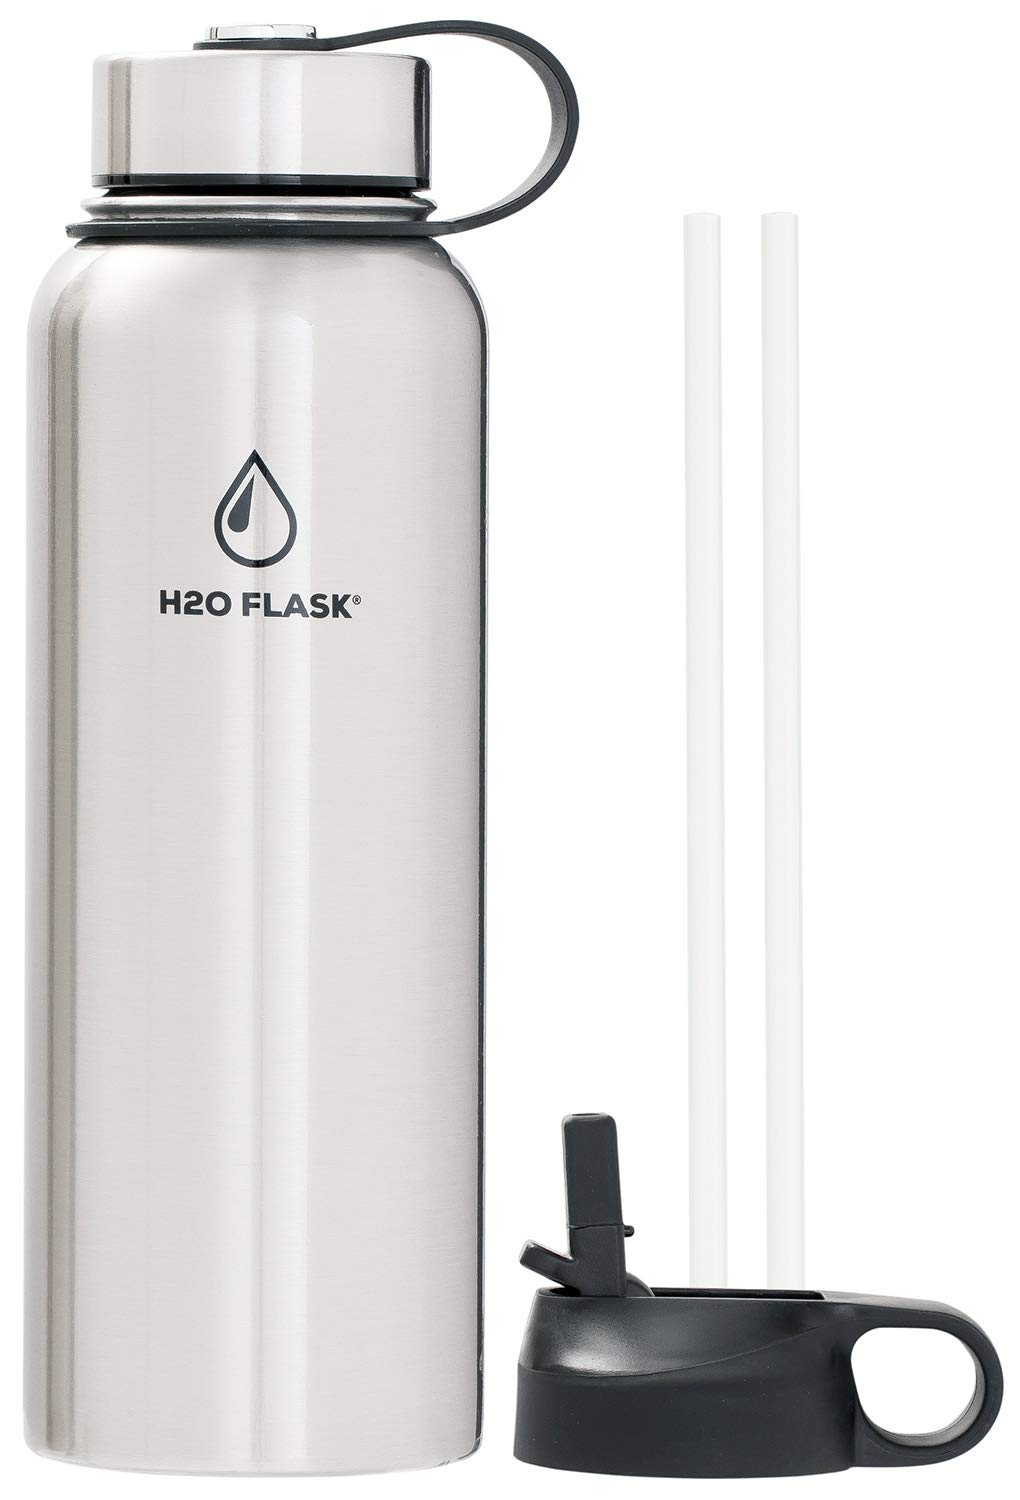 SilverOnyx H2O Flask Insulated Water Bottle, Stainless Steel Wide Mouth Double Wall 32oz & 40oz Hydro Jug, Leak-Proof w/ 2 Lids & 2 Straws, Vacuum Insulated Keeps Drinks Hot or Cold